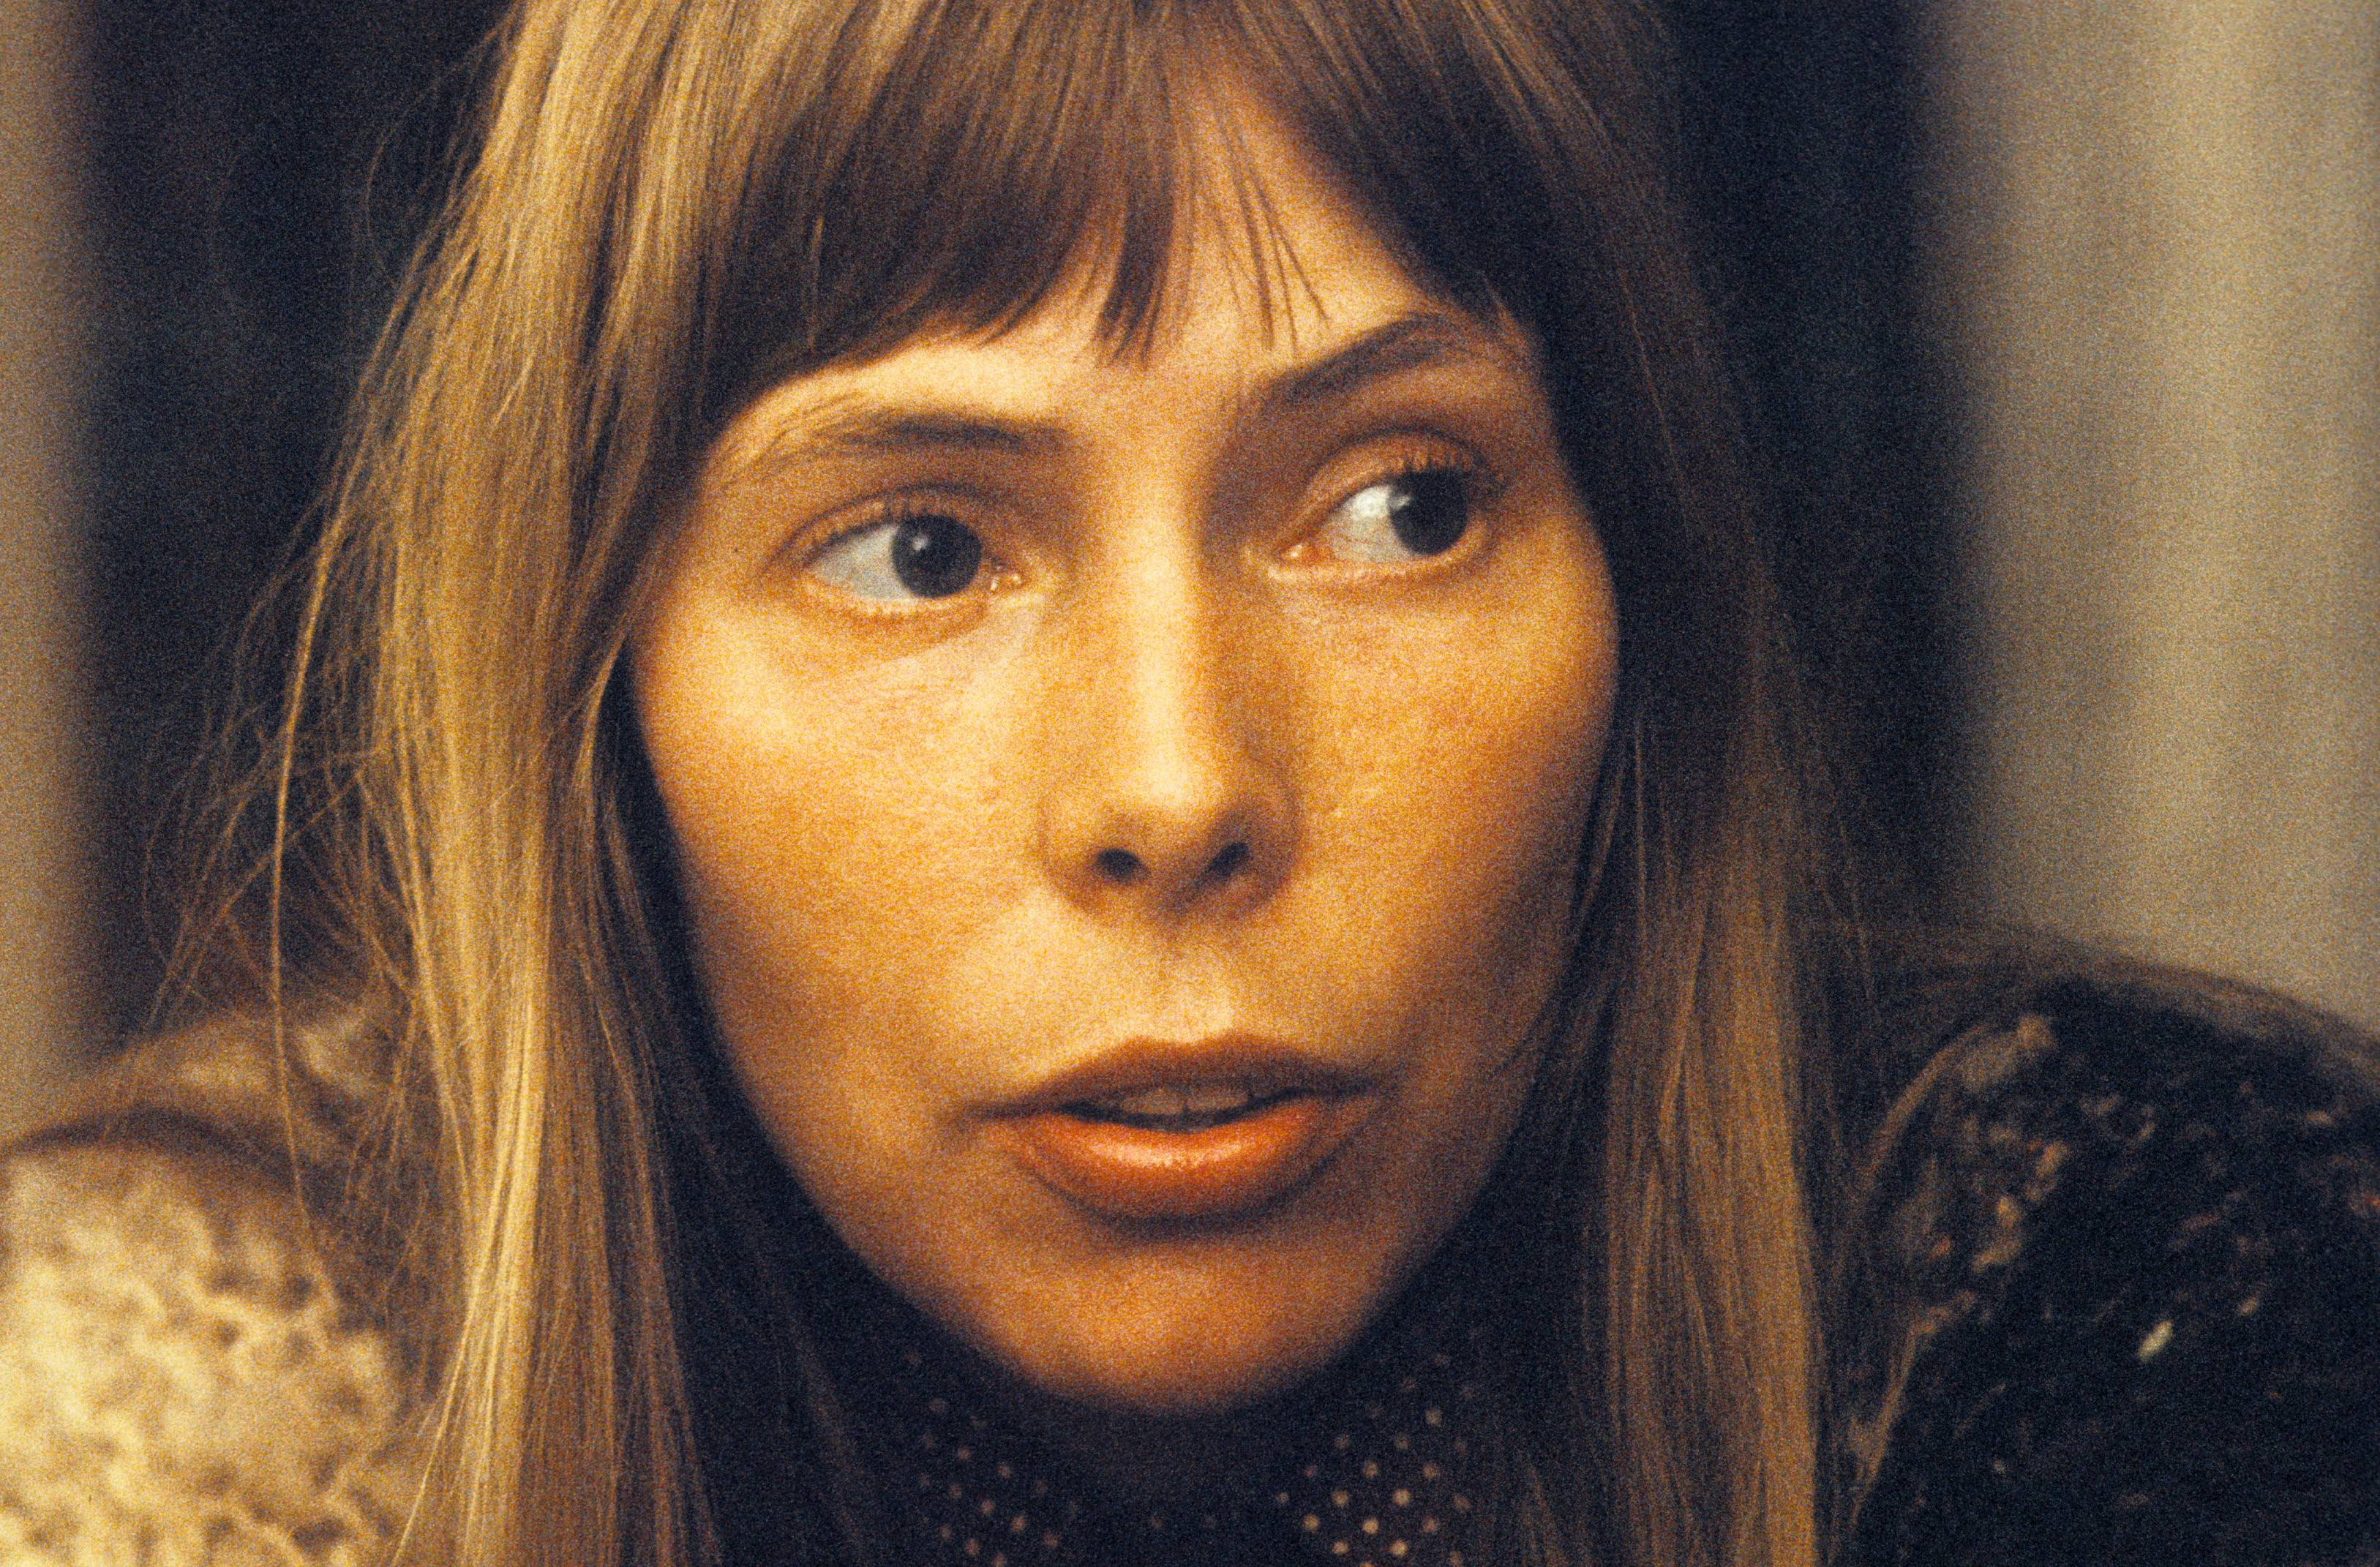 Joni Mitchell's Rare Book of Handwritten Lyrics, Watercolor Paintings to Be Reprinted